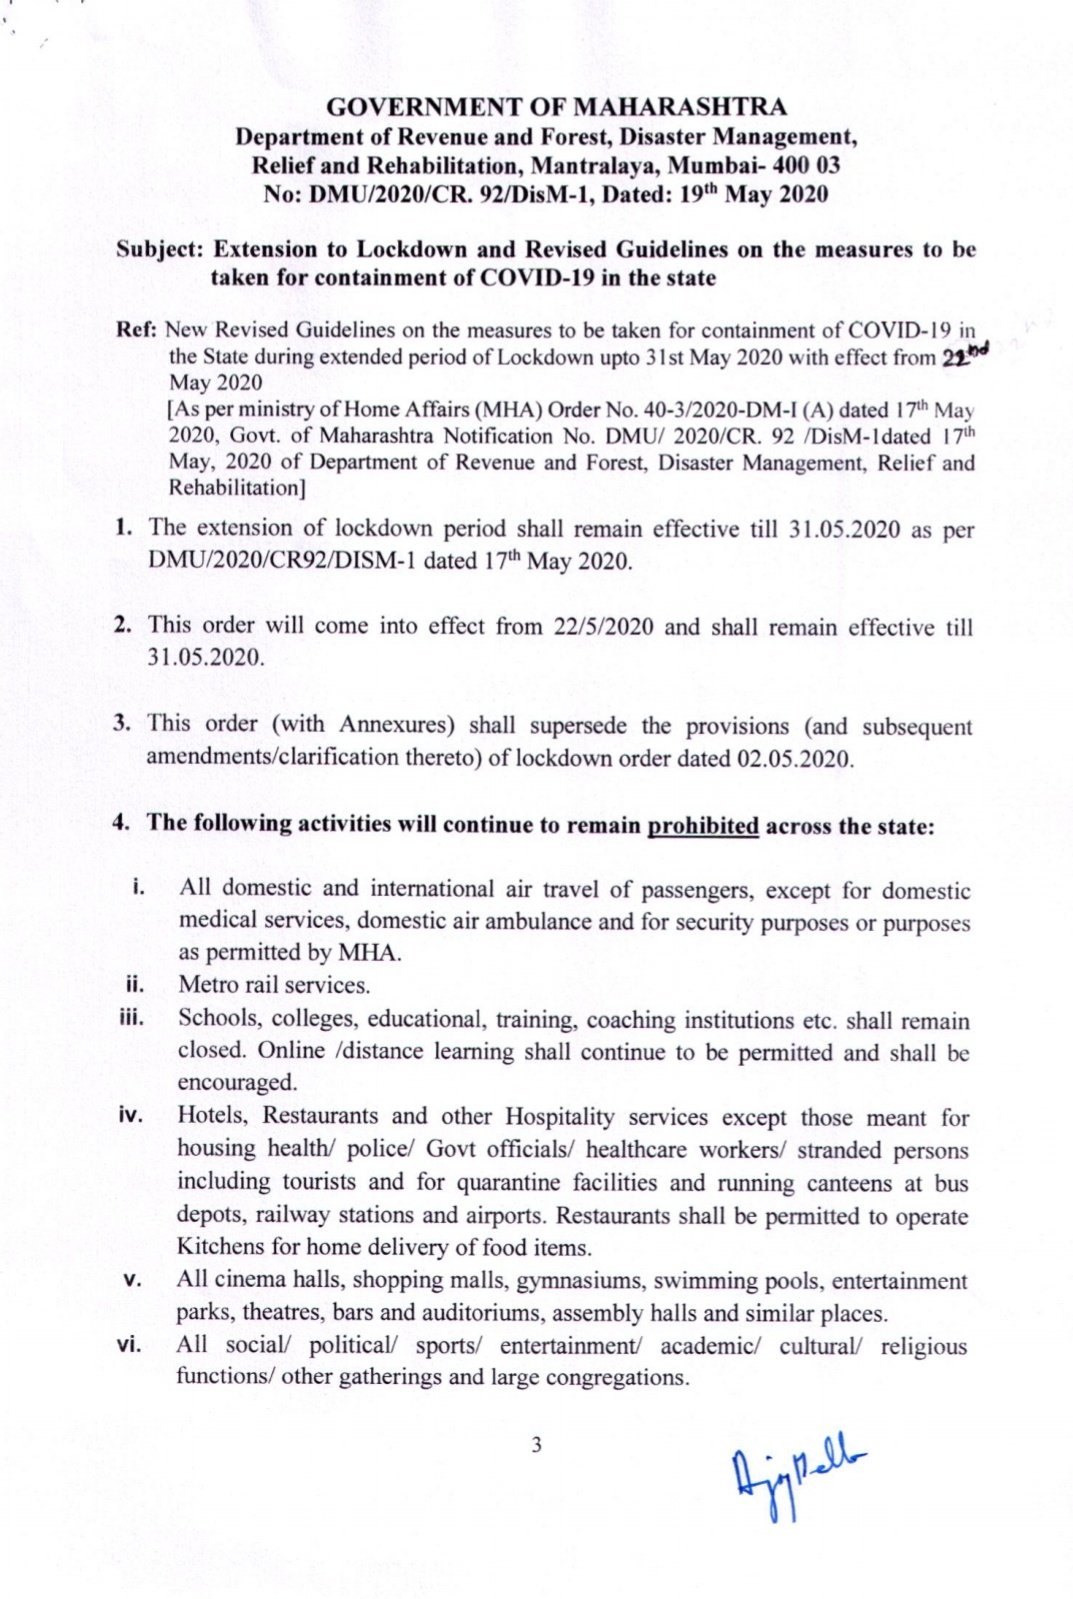 Cmo Maharashtra On Twitter Revised Guidelines During The Extended Period Of Lockdown For The Containment Of Covid 19 In The State 1 3